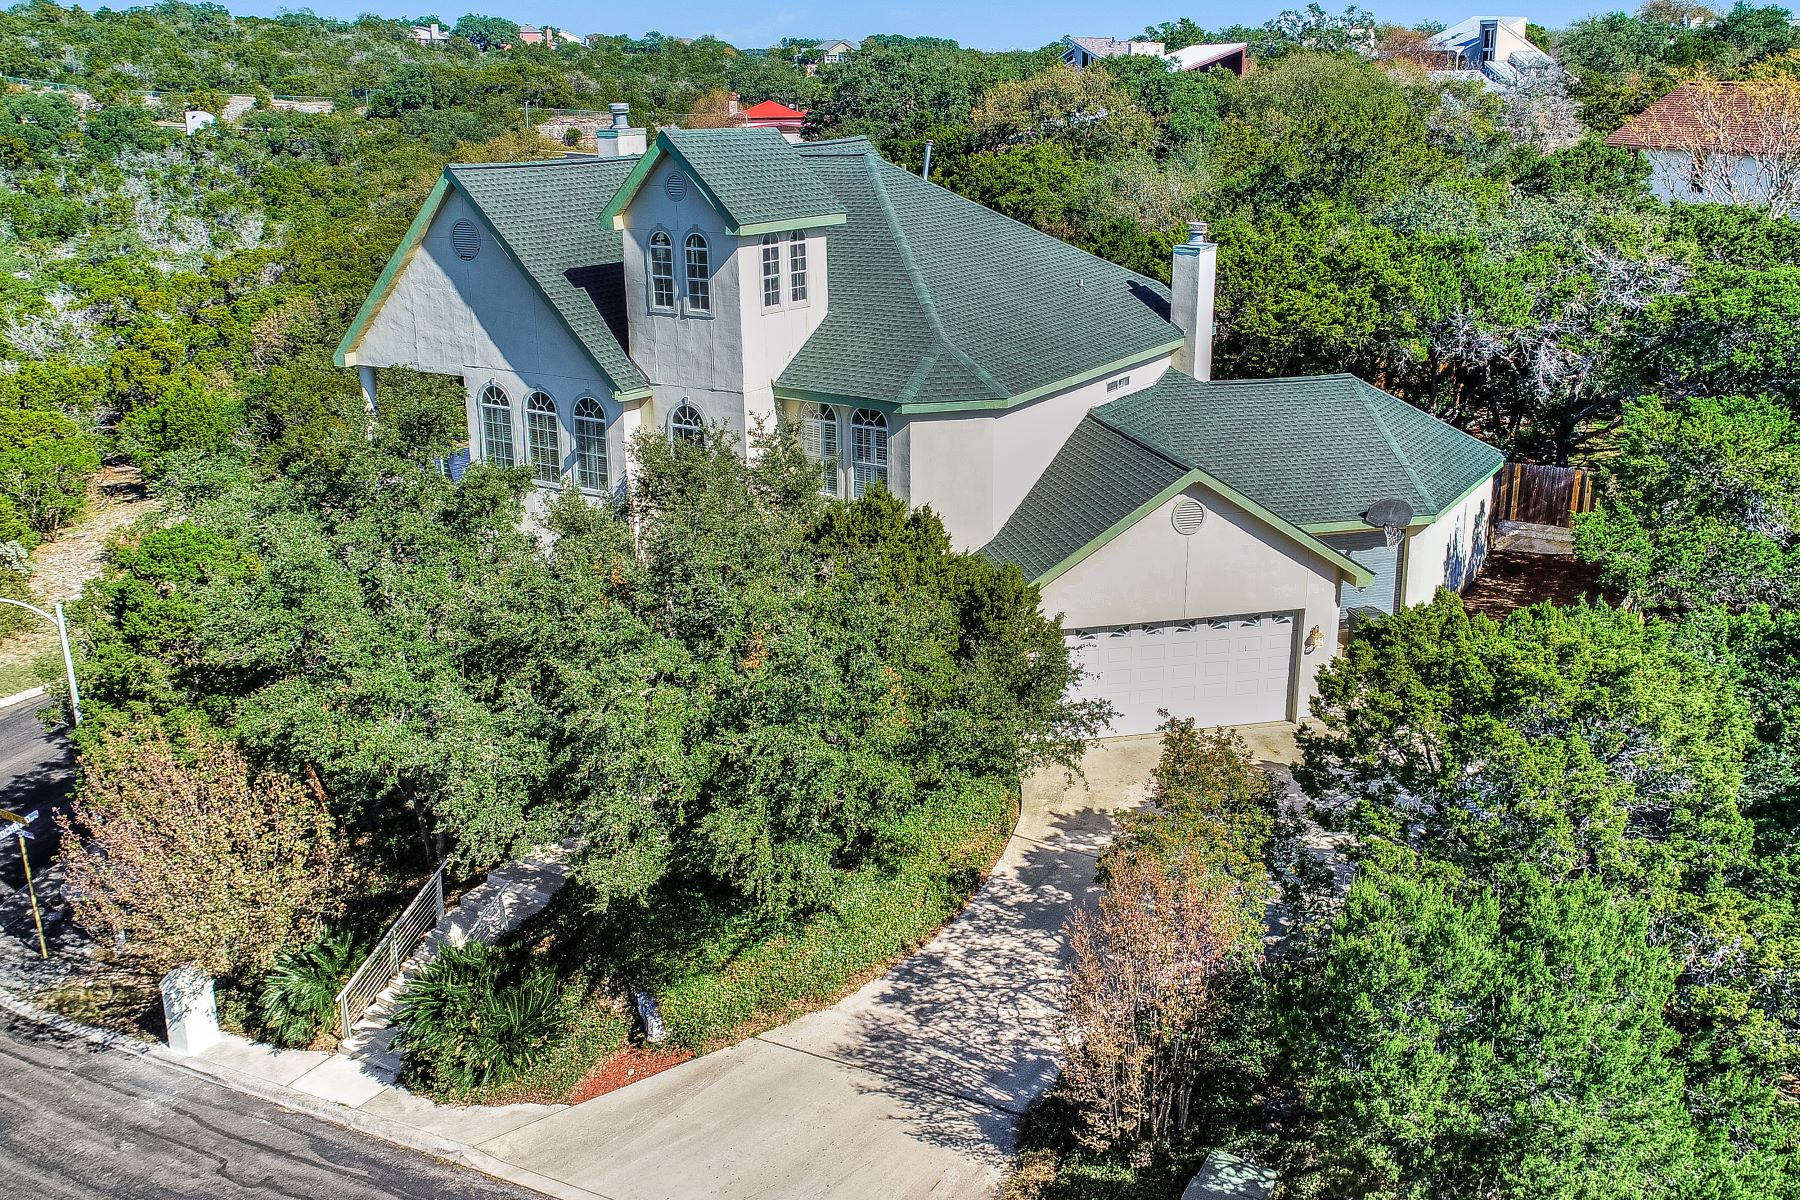 Single Family Homes for Active at Spectacular Home High on the Hill with views for miles! 16744 Windjammer Helotes, Texas 78023 United States